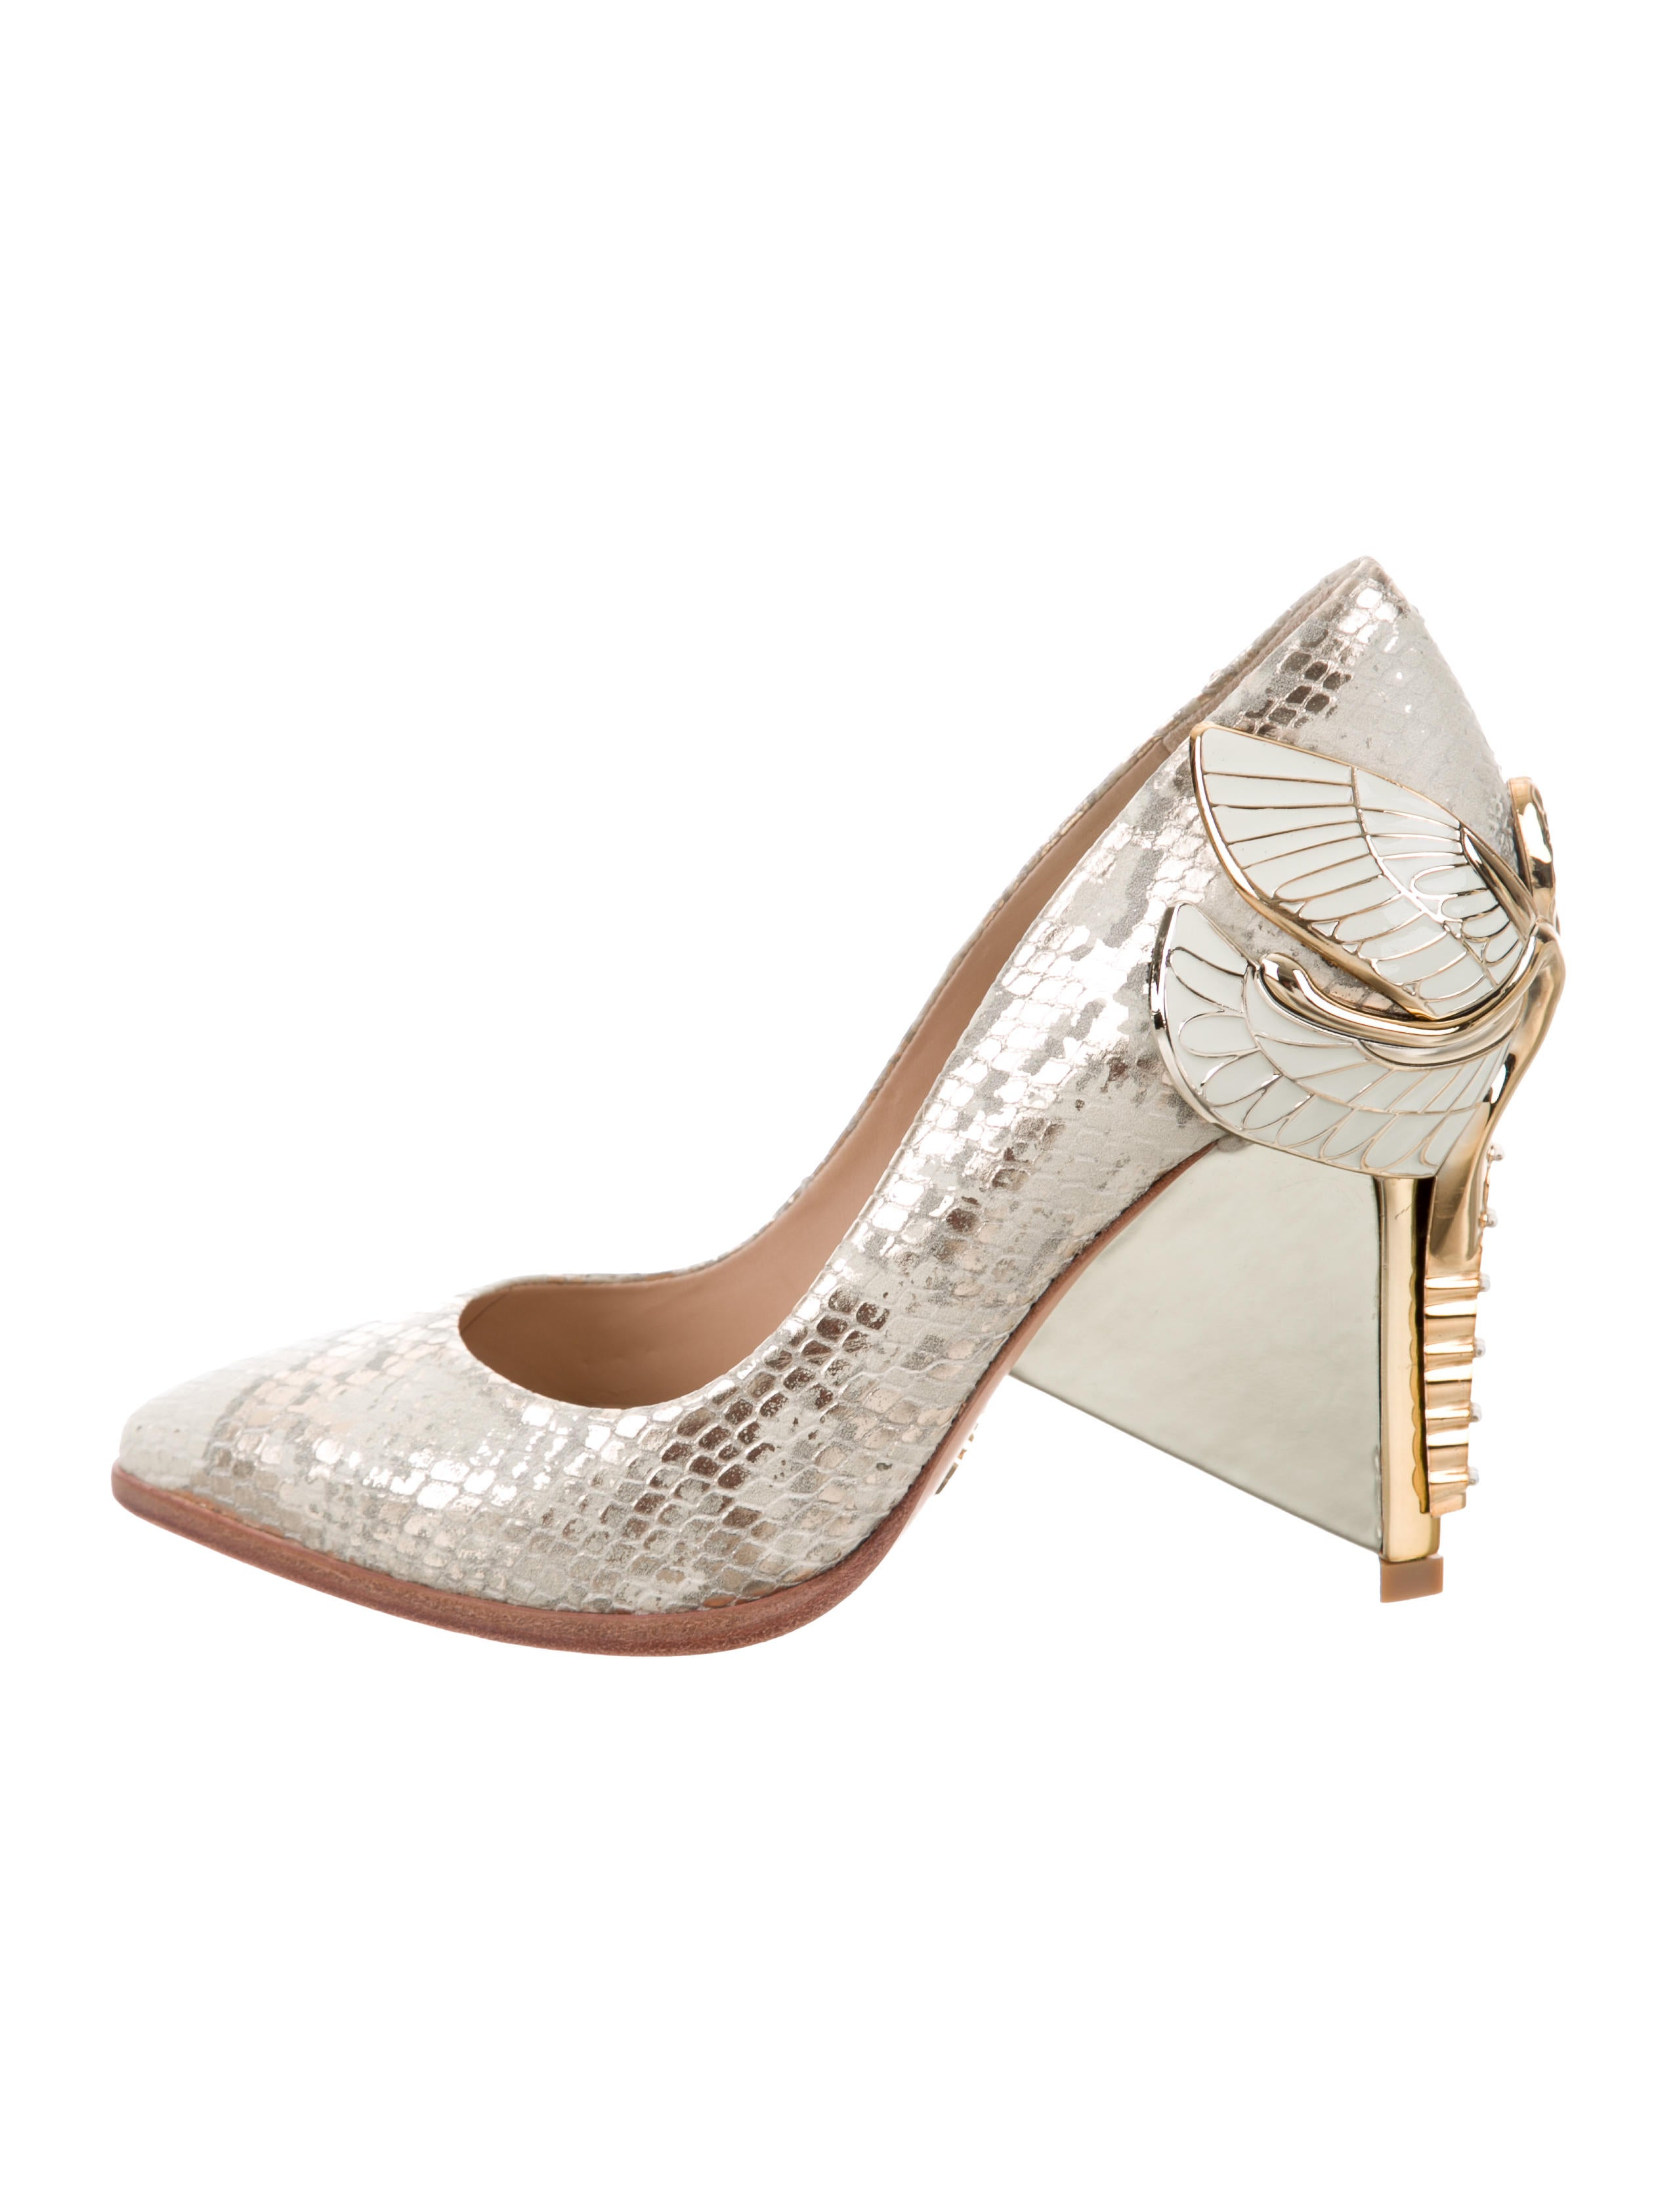 free shipping with mastercard Femmes Sans Peur Aurora Pointed-Toe Pumps w/ Tags extremely cheap online cheap sale pre order pay with paypal for sale IS1tm4Eilk